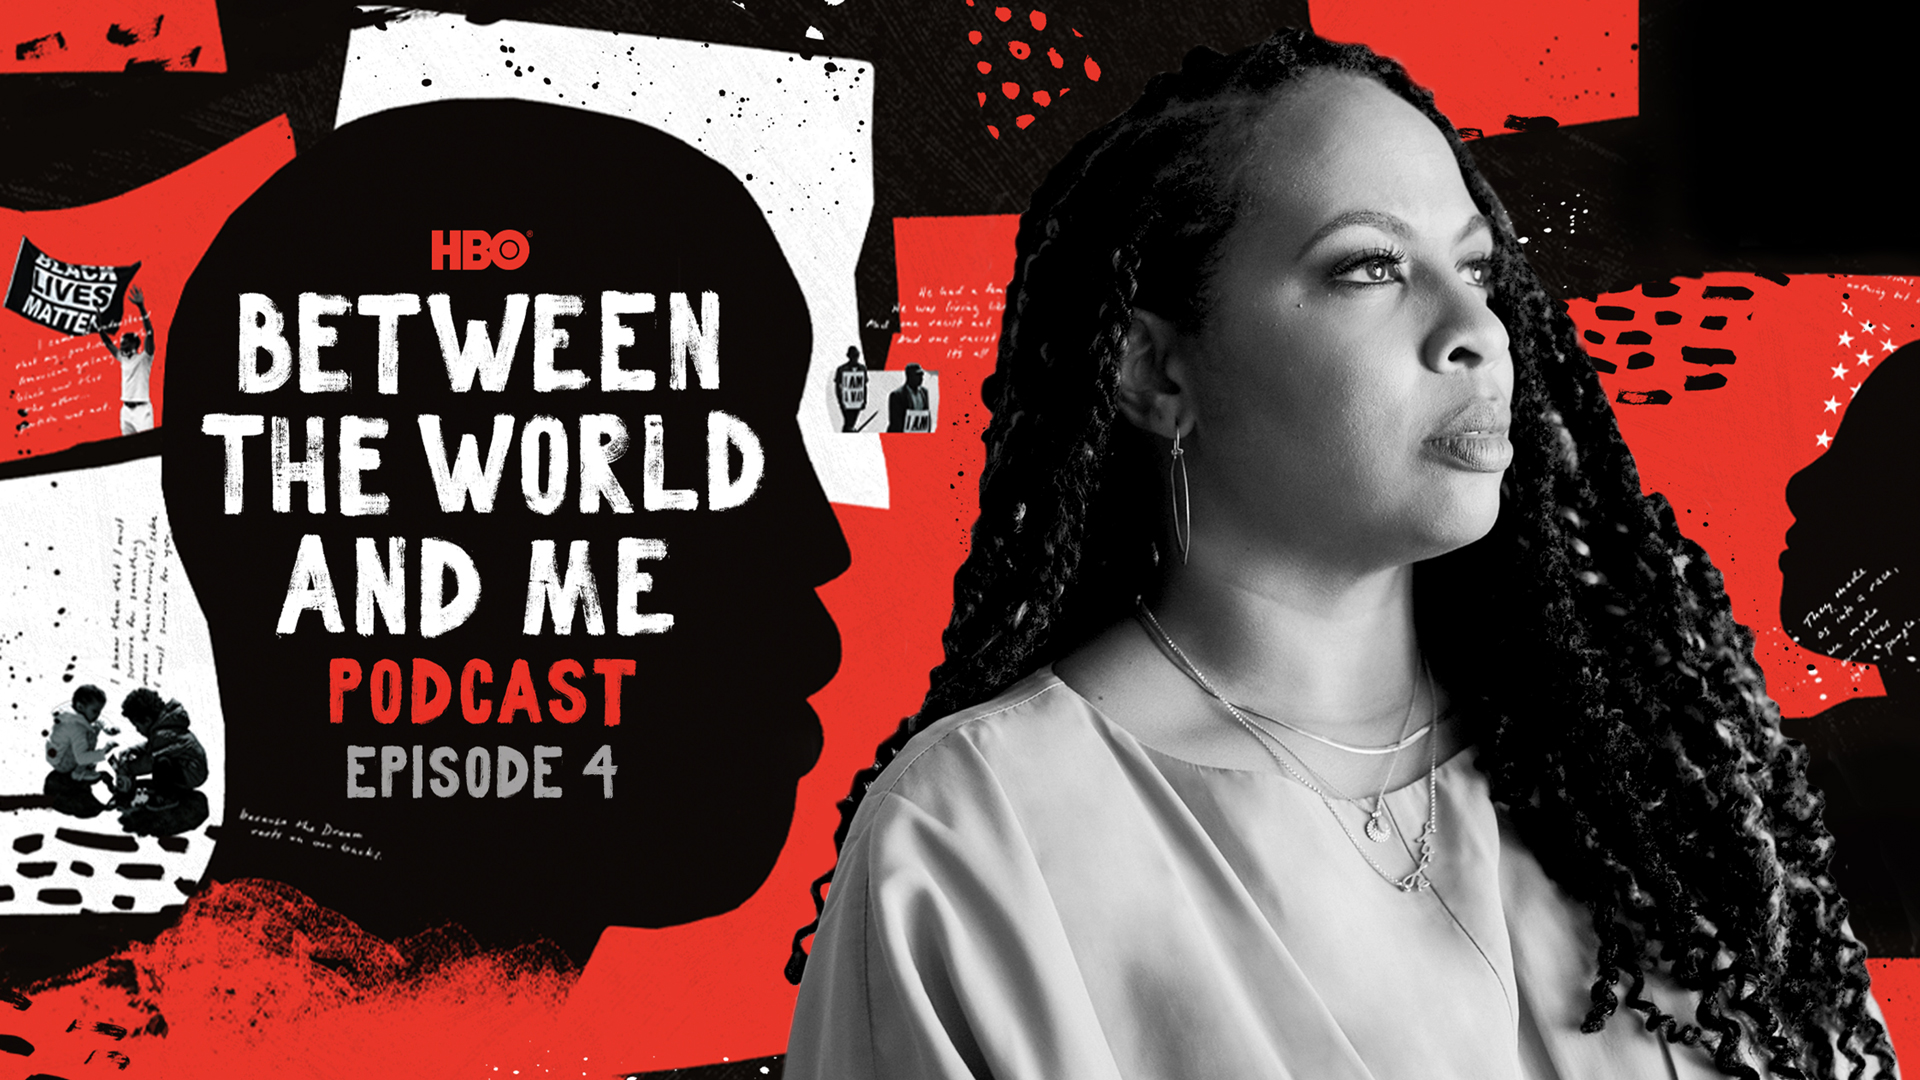 Between The World And Me Podcast Ep. 4: The World